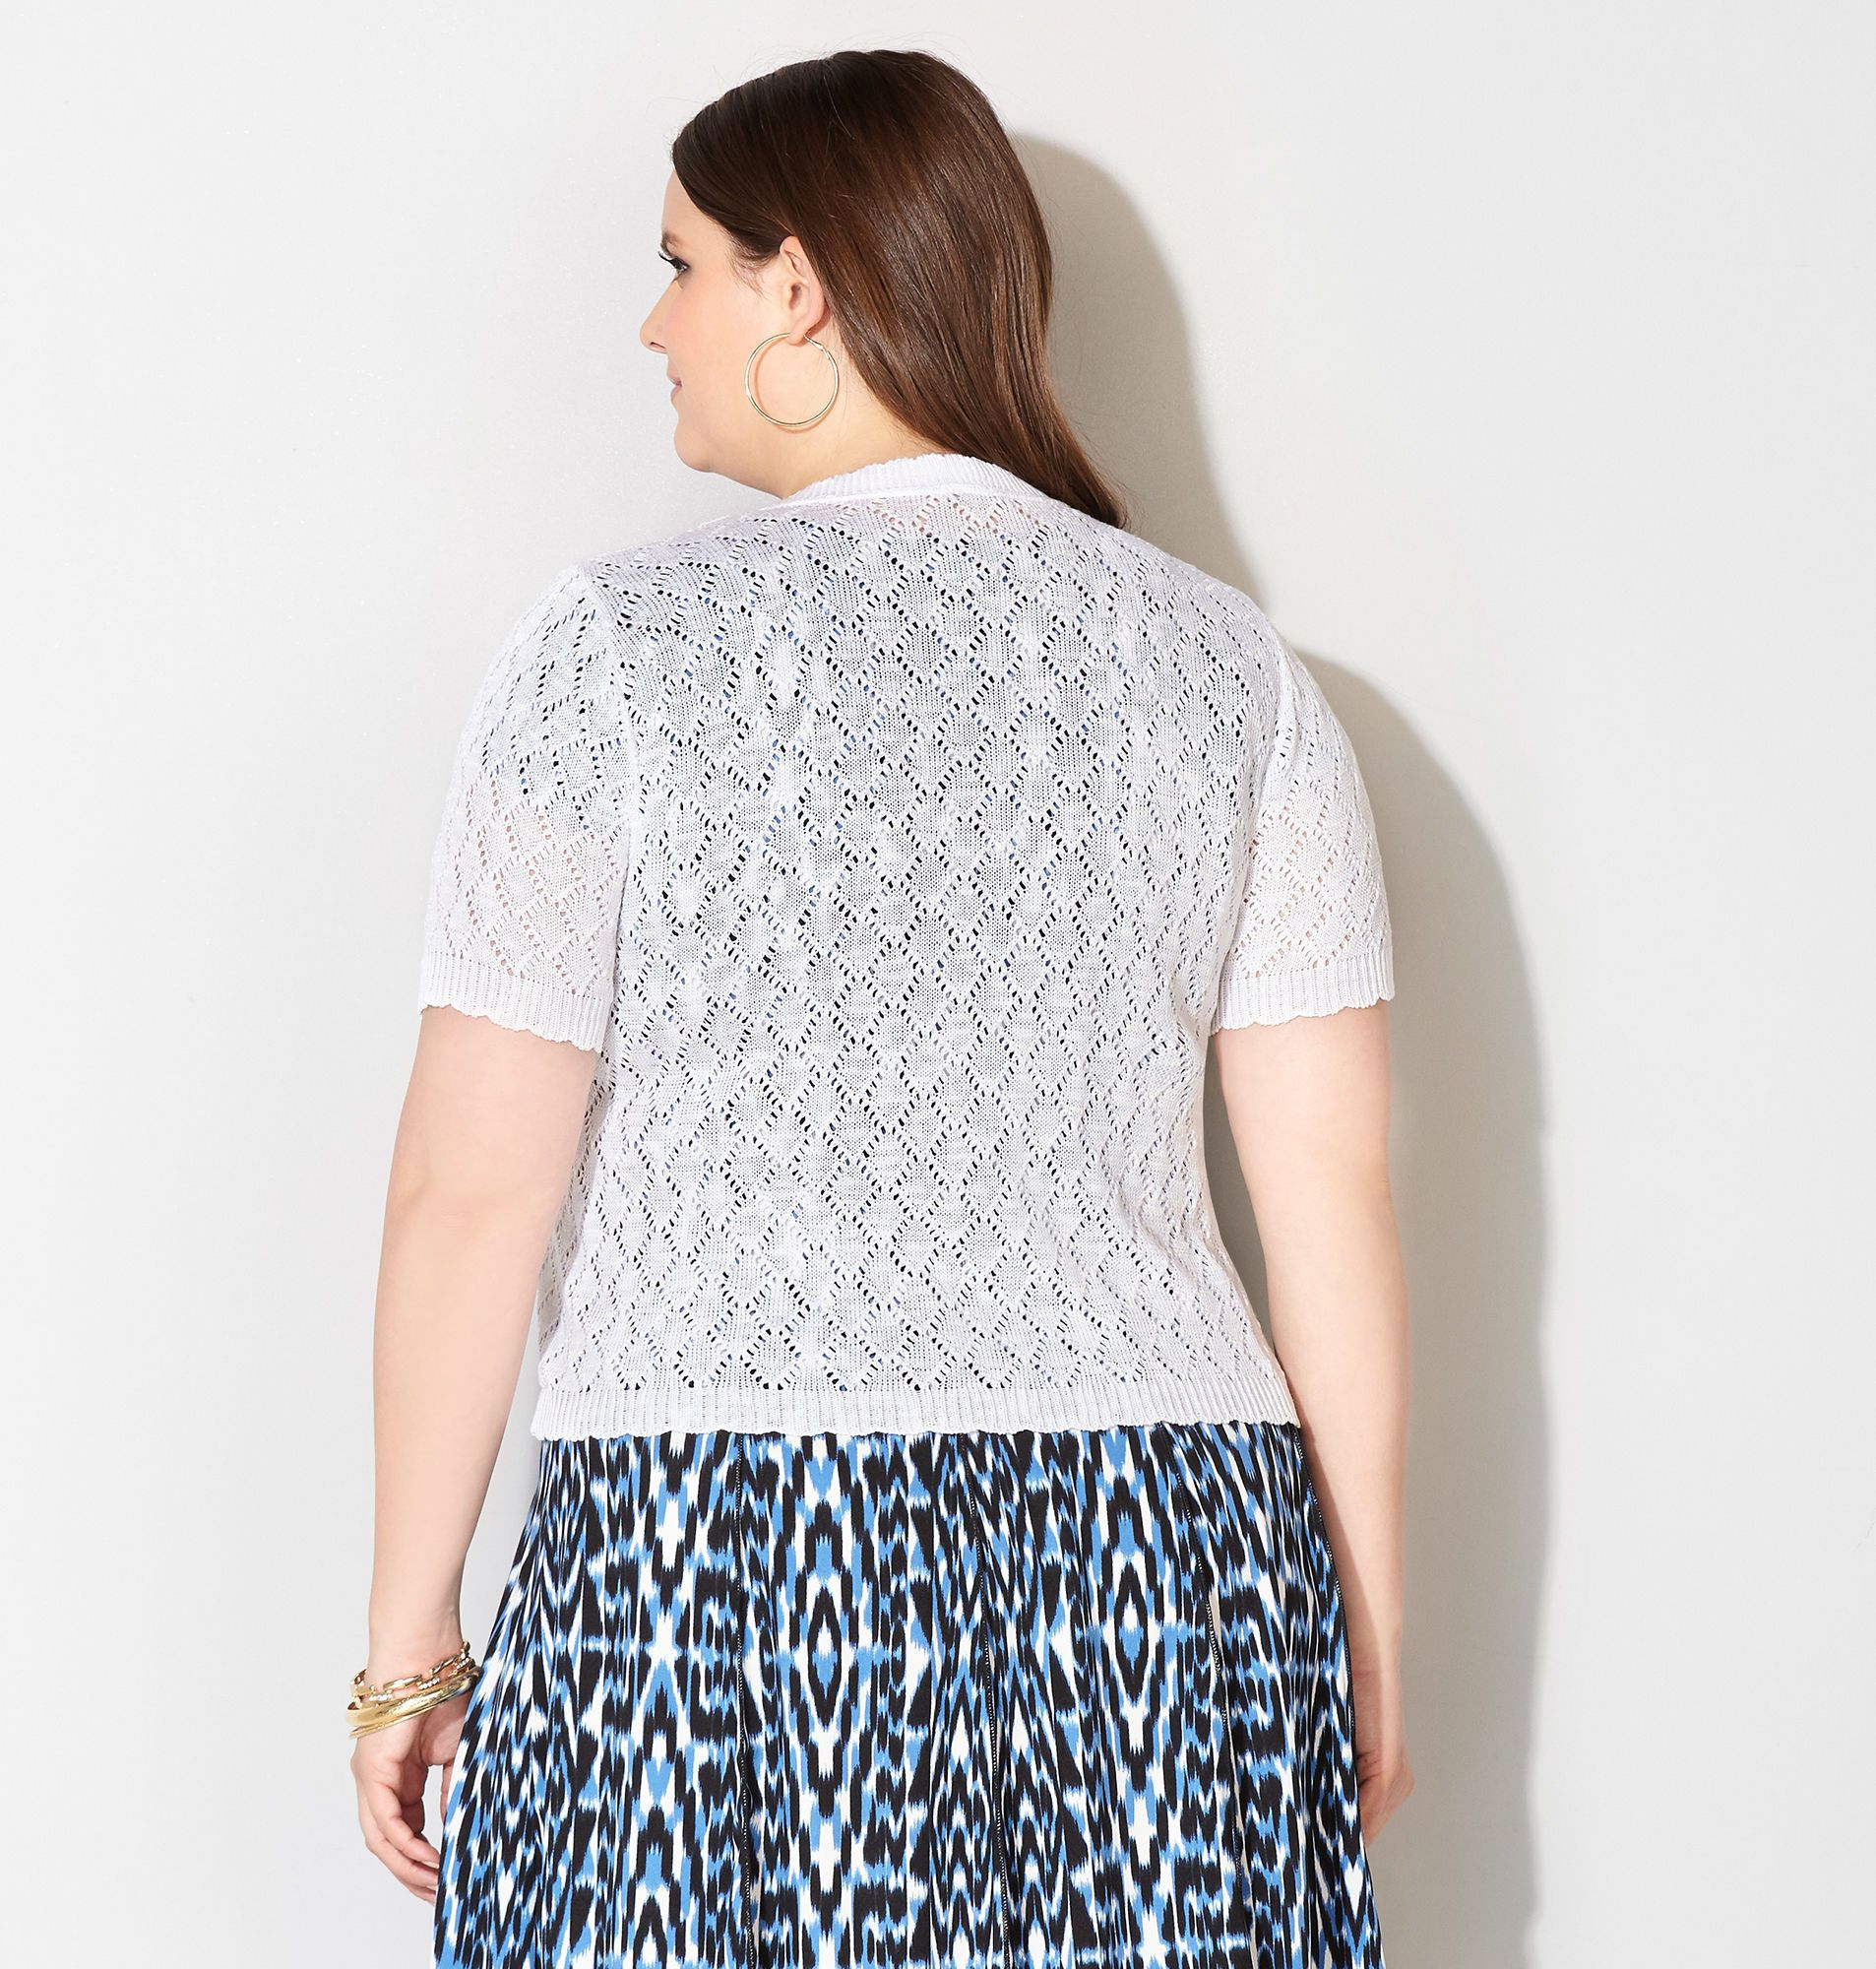 Scalloped Diamond Stitch Shrug - Avenue